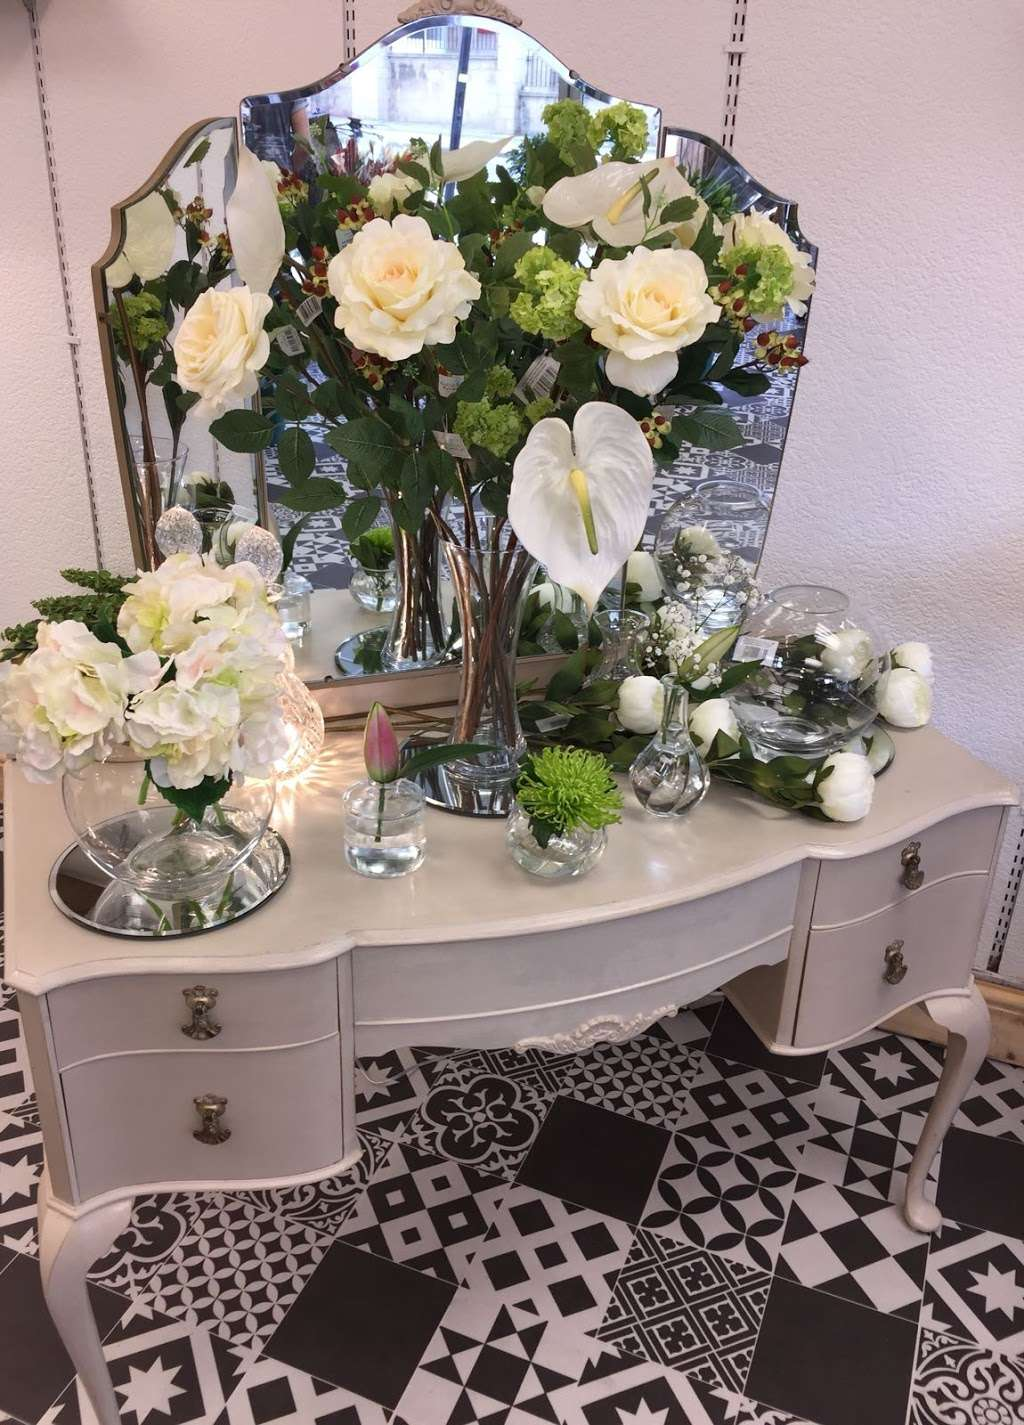 Coggers in Bloom - florist  | Photo 7 of 10 | Address: 849 Forest Rd, Walthamstow, London E17 4AT, UK | Phone: 020 8527 1051